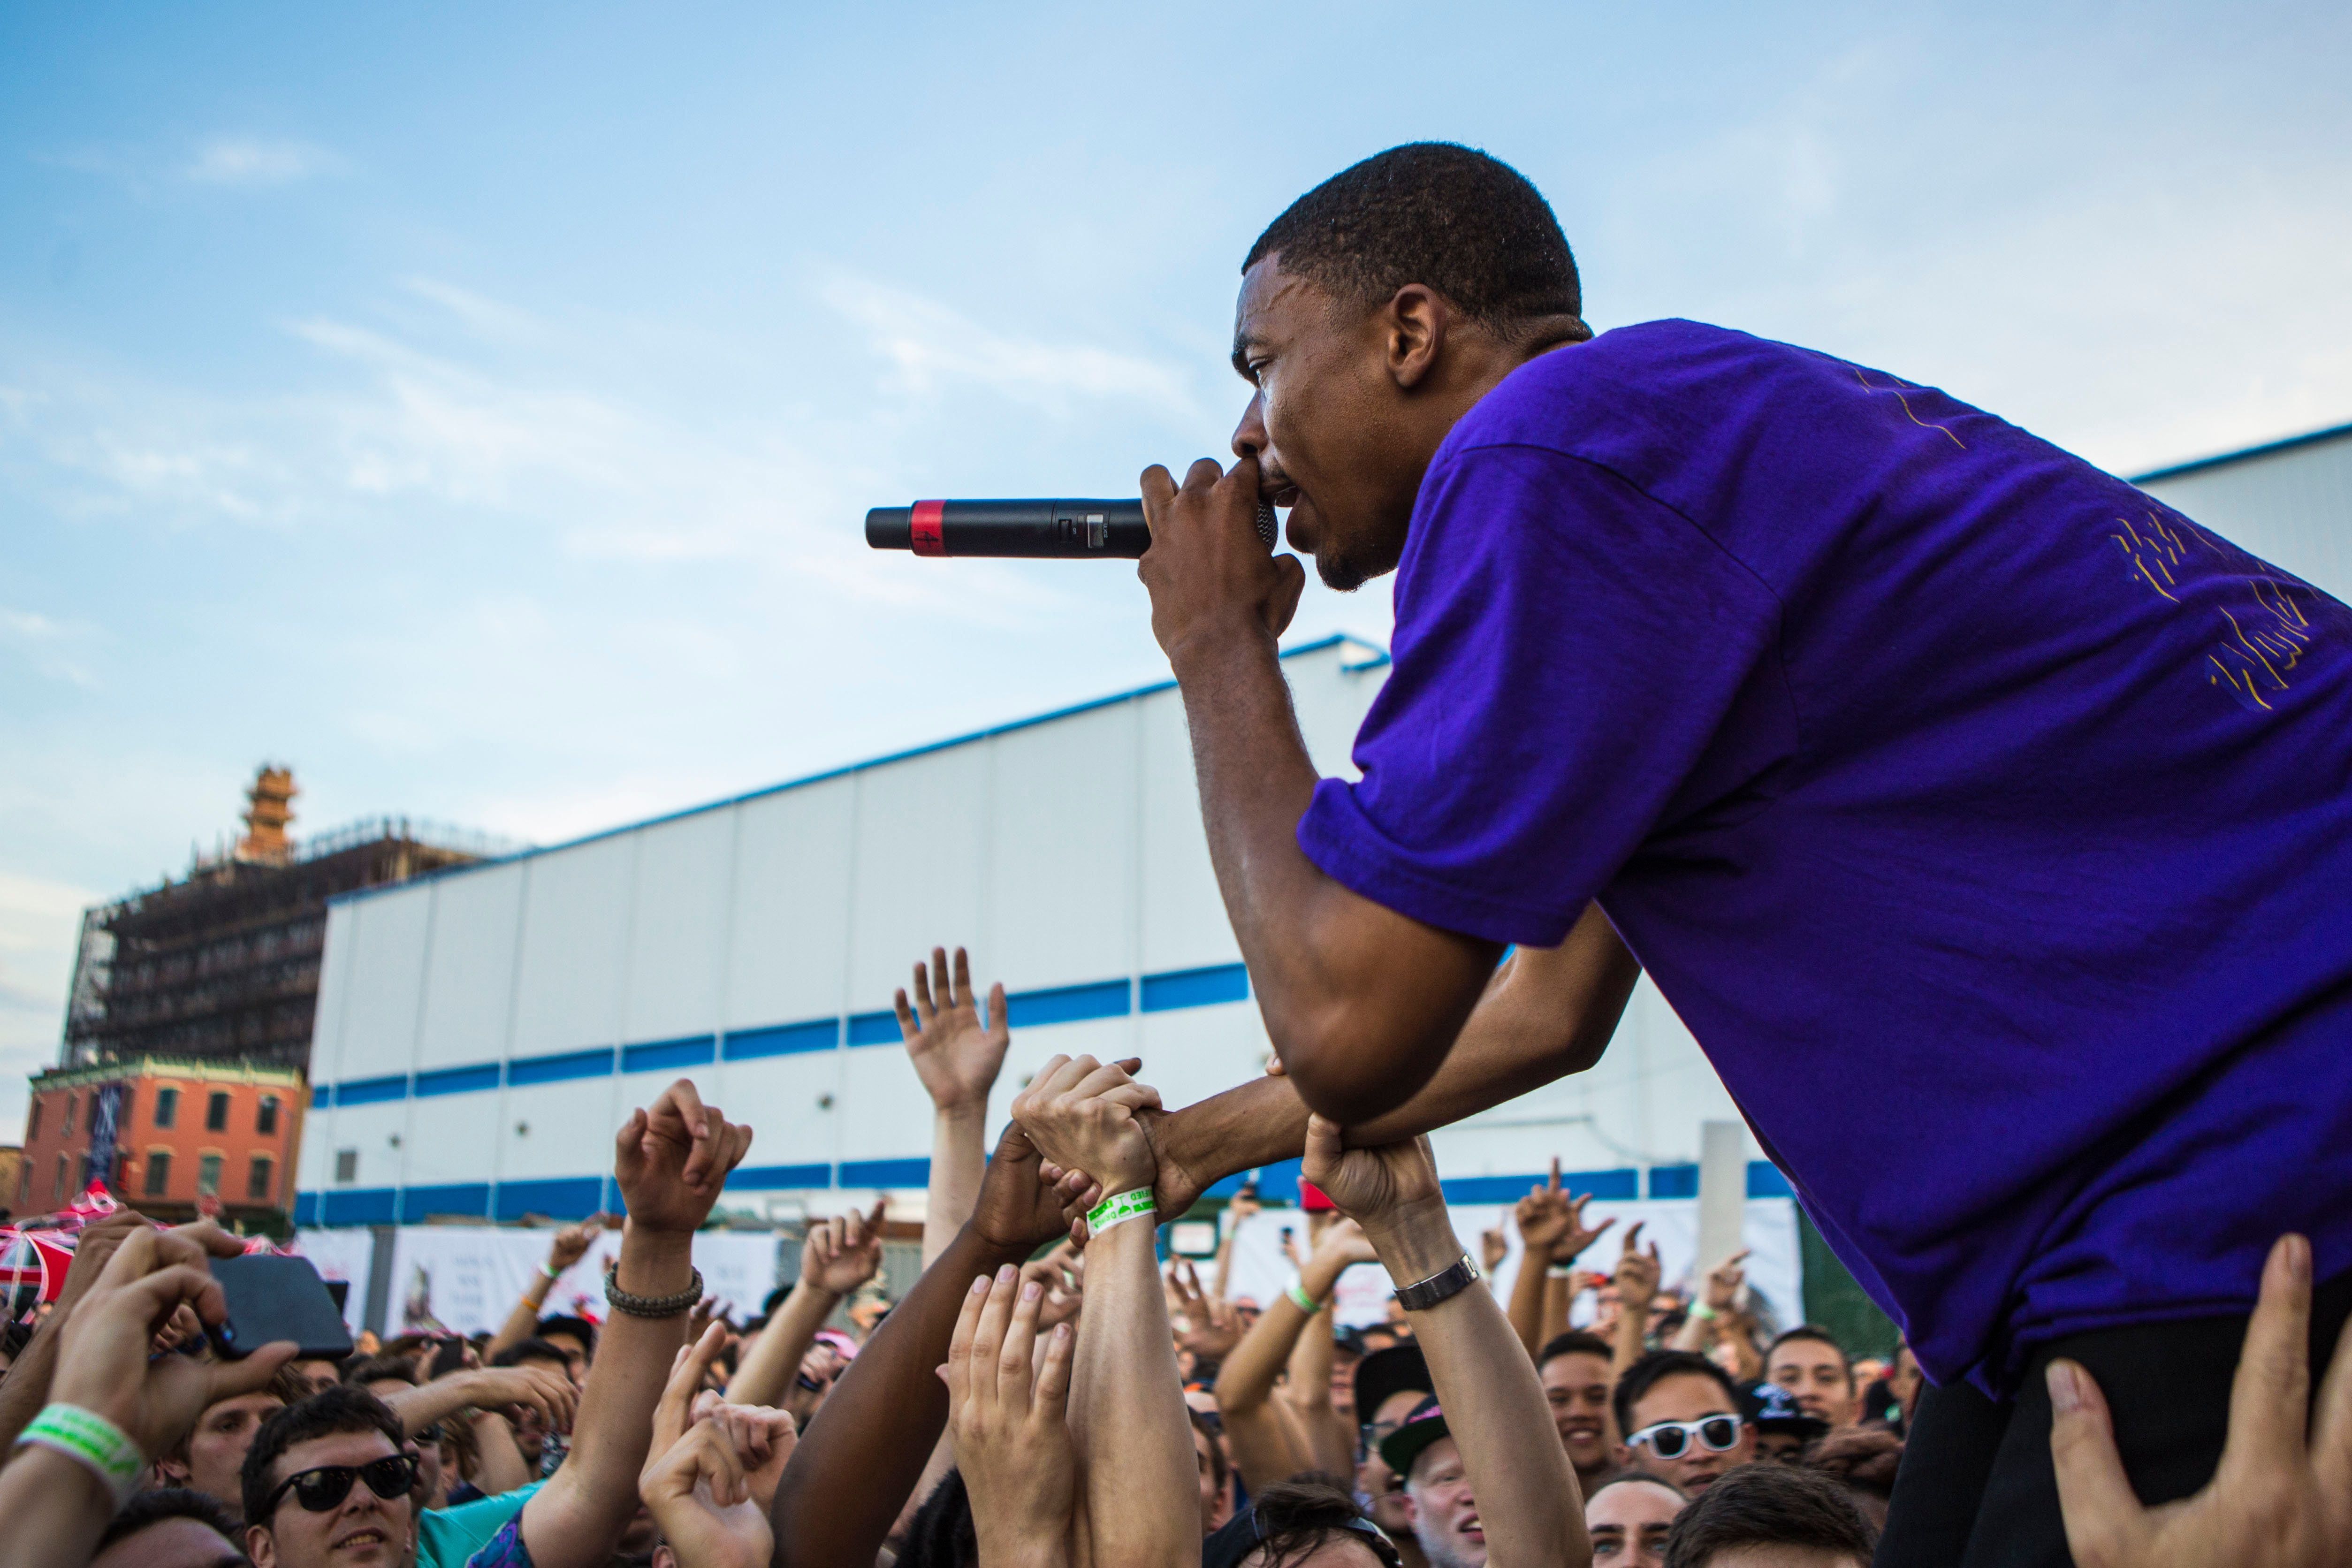 Vince Staples performs during Brooklyn's annual Northside Festival in 2015. Headliners over the years have included Solange,